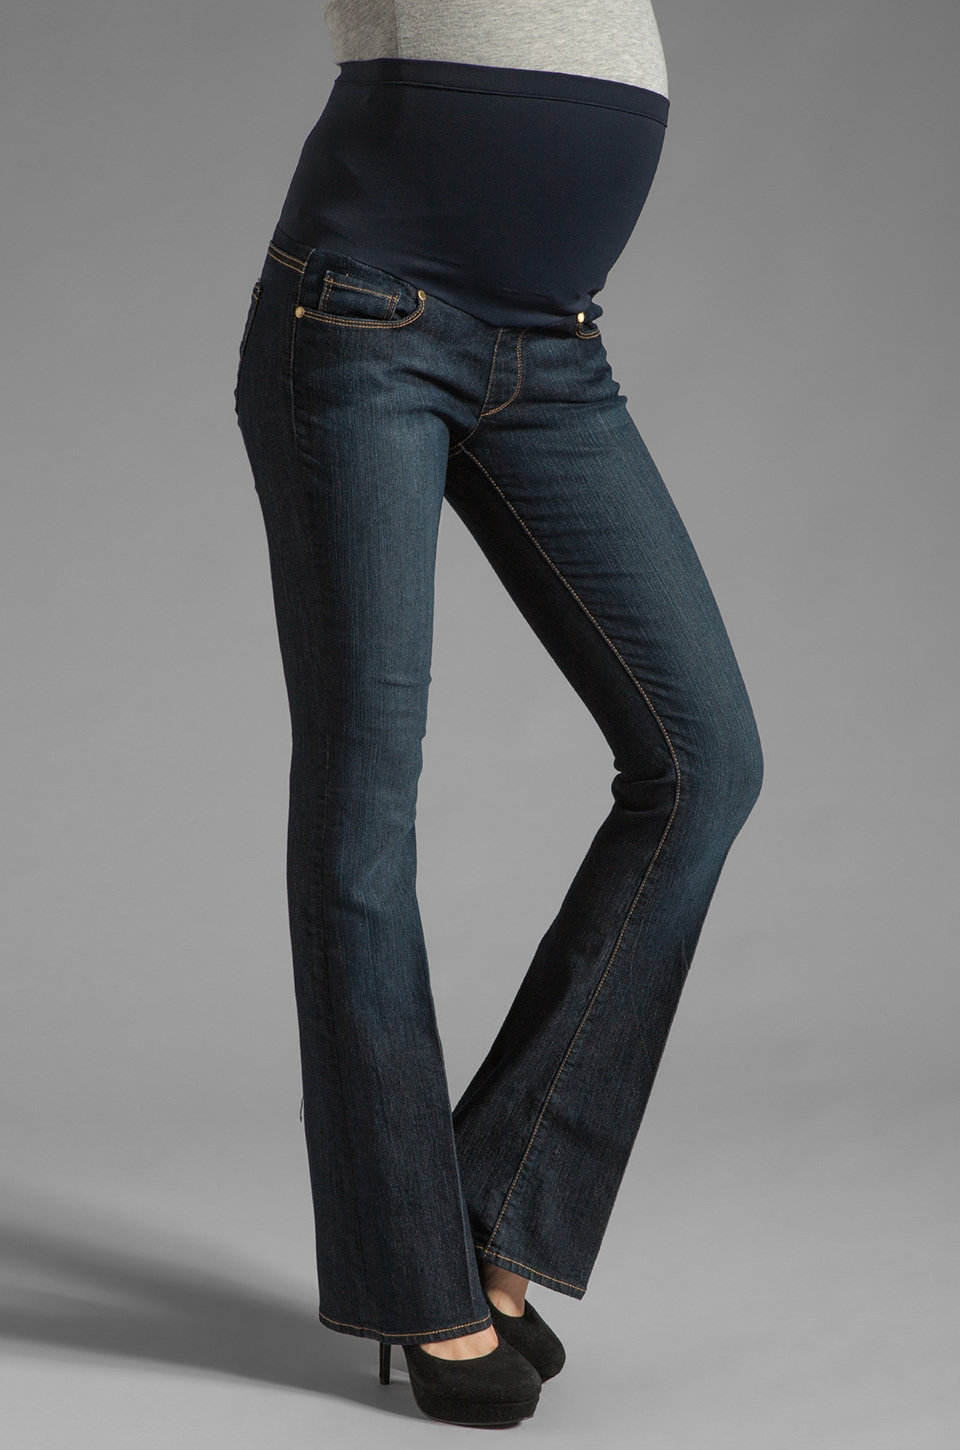 Paige Denim Maternity Skyline Boot with New Panel in Carson